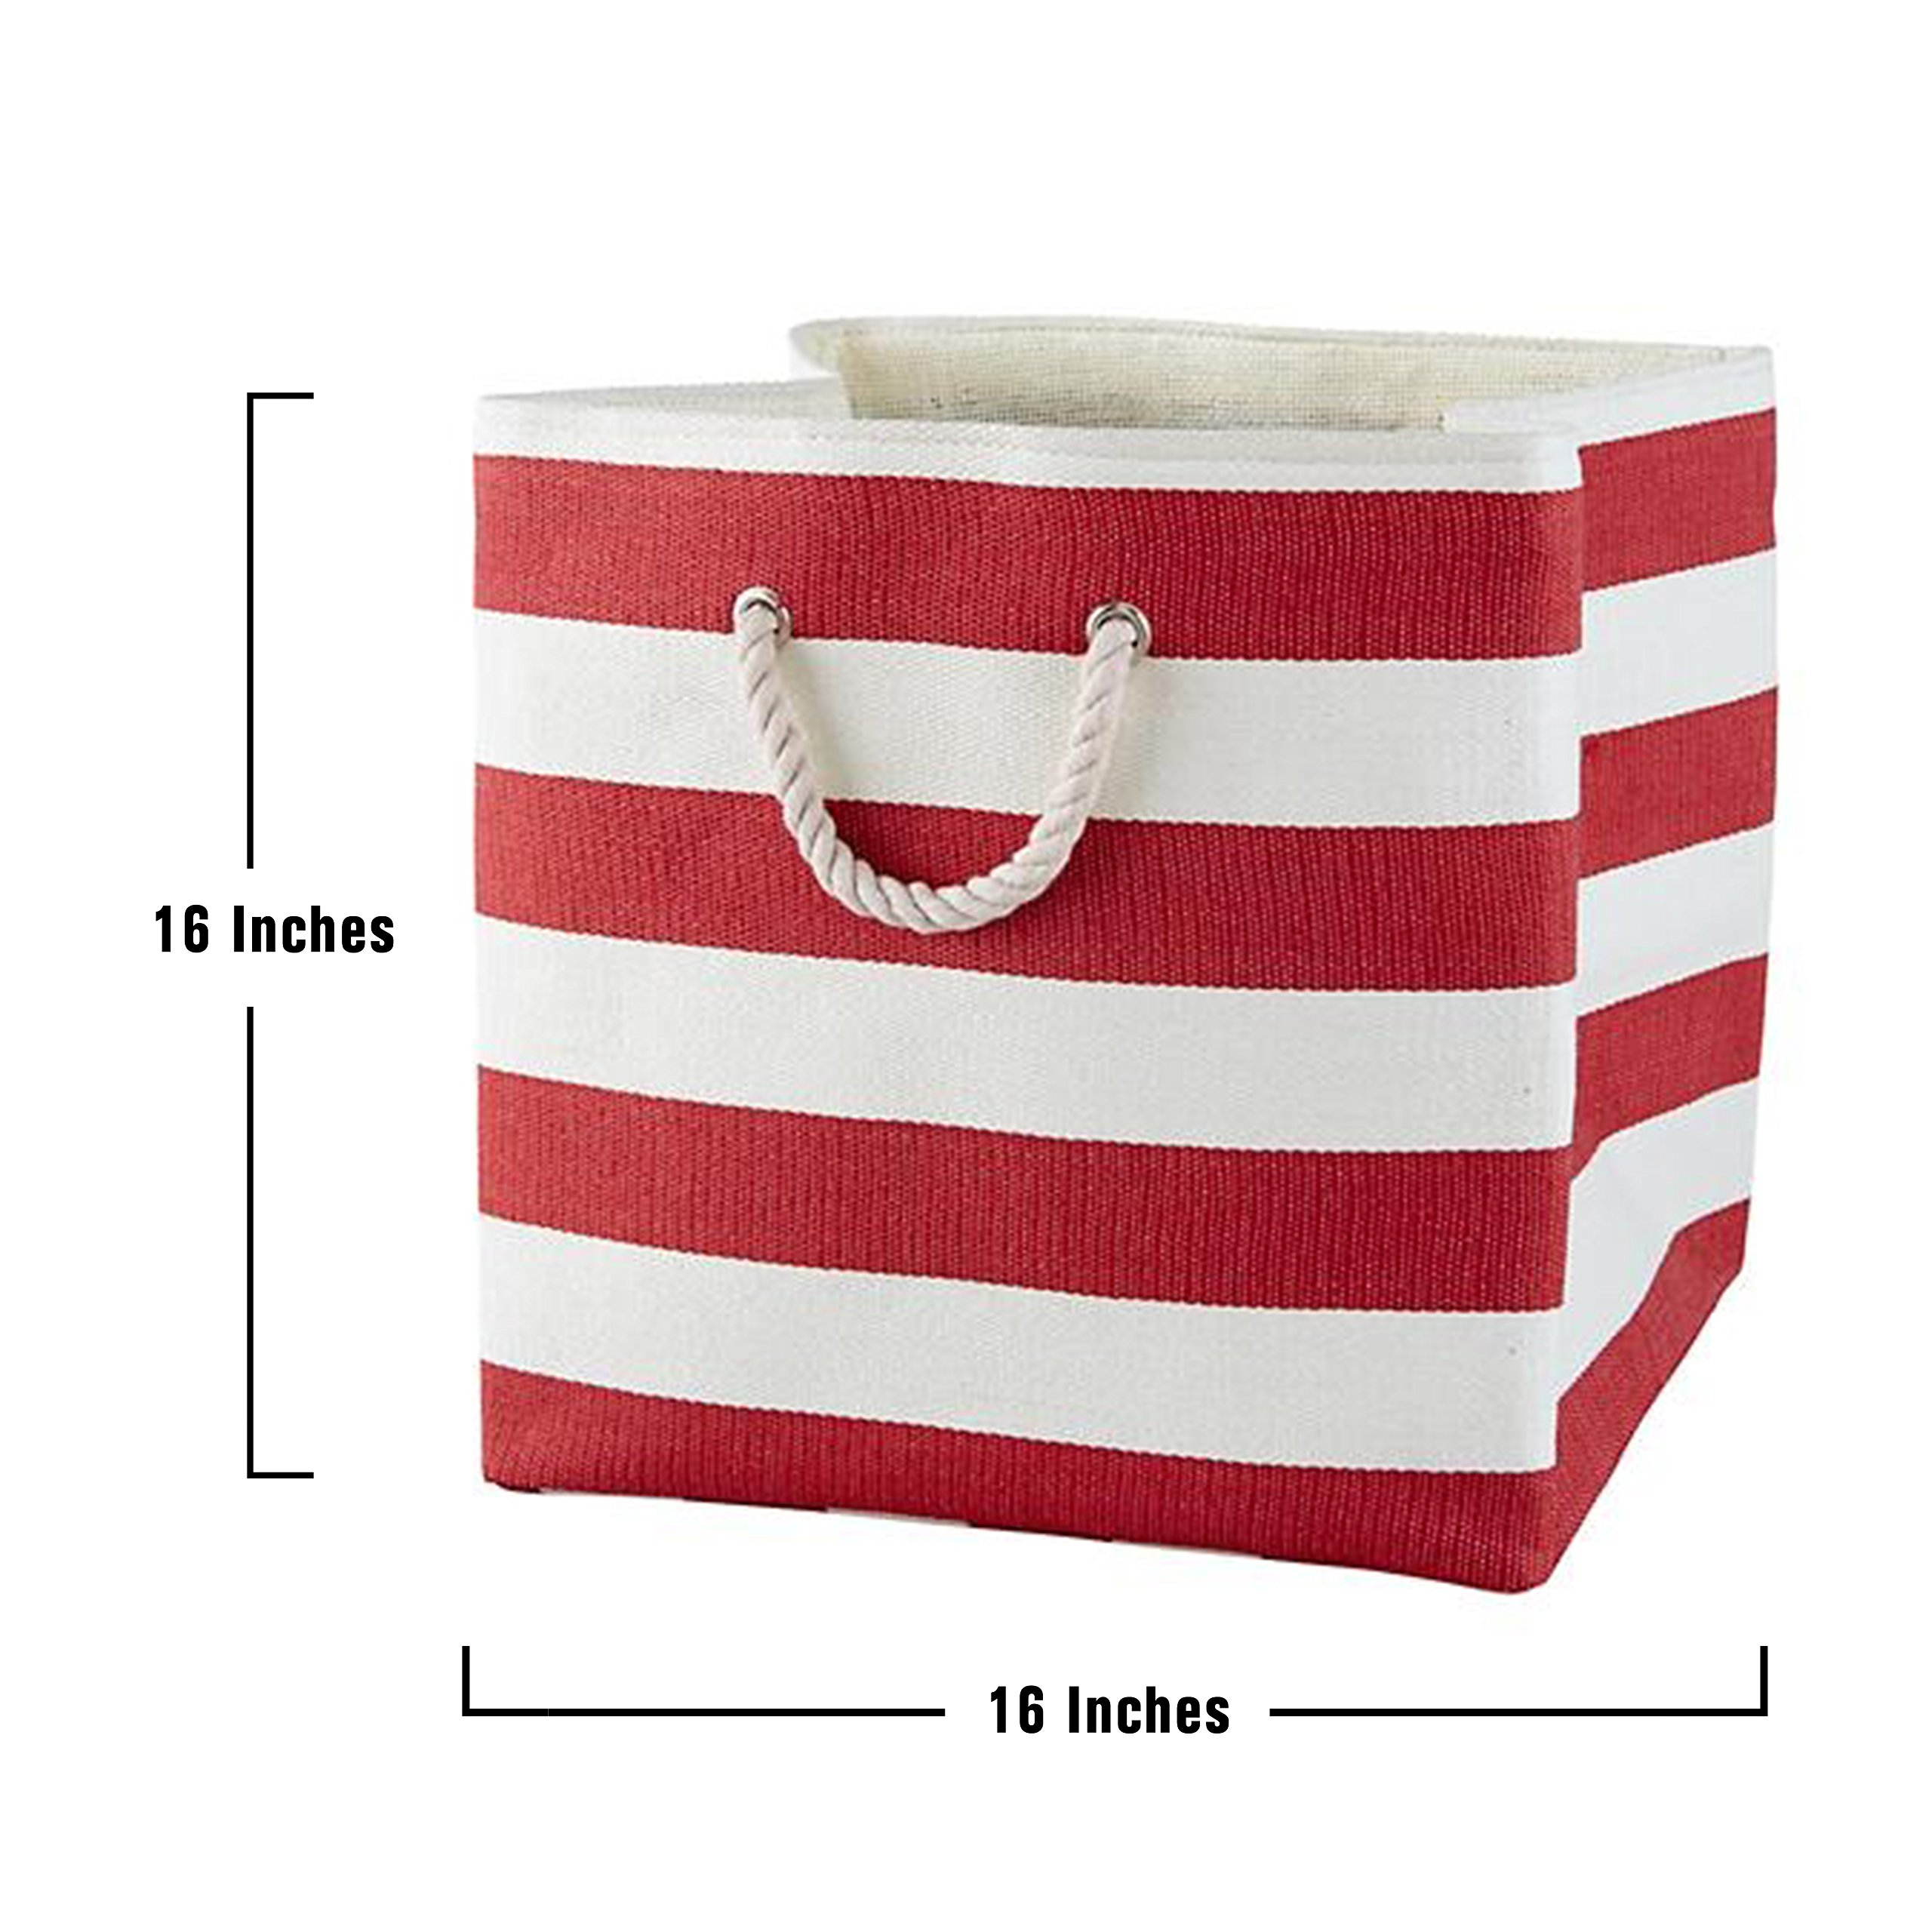 Large Storage Baskets and Bins - Store Toys, Laundry, Clothes for a Bedroom, Kids Room, Nursery, Home Office, Living or Family Room - Red by Betty Rhae